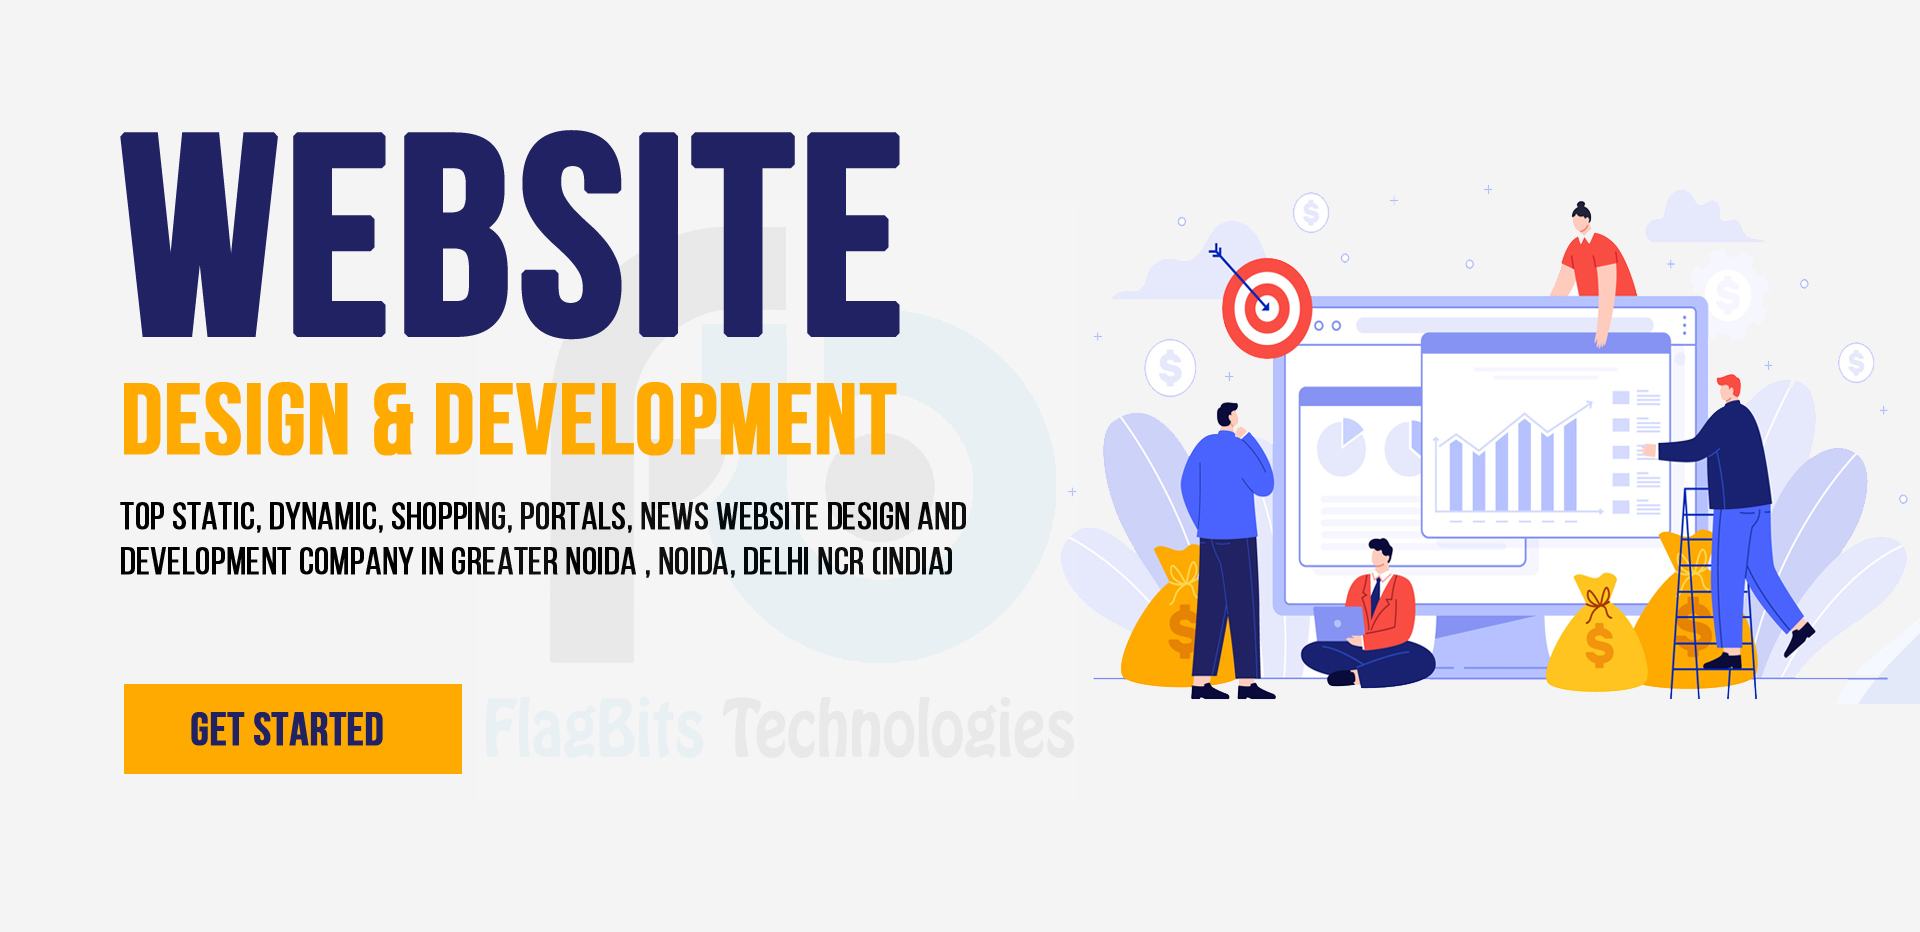 Best Website Design Development Company 2020 Flagbits